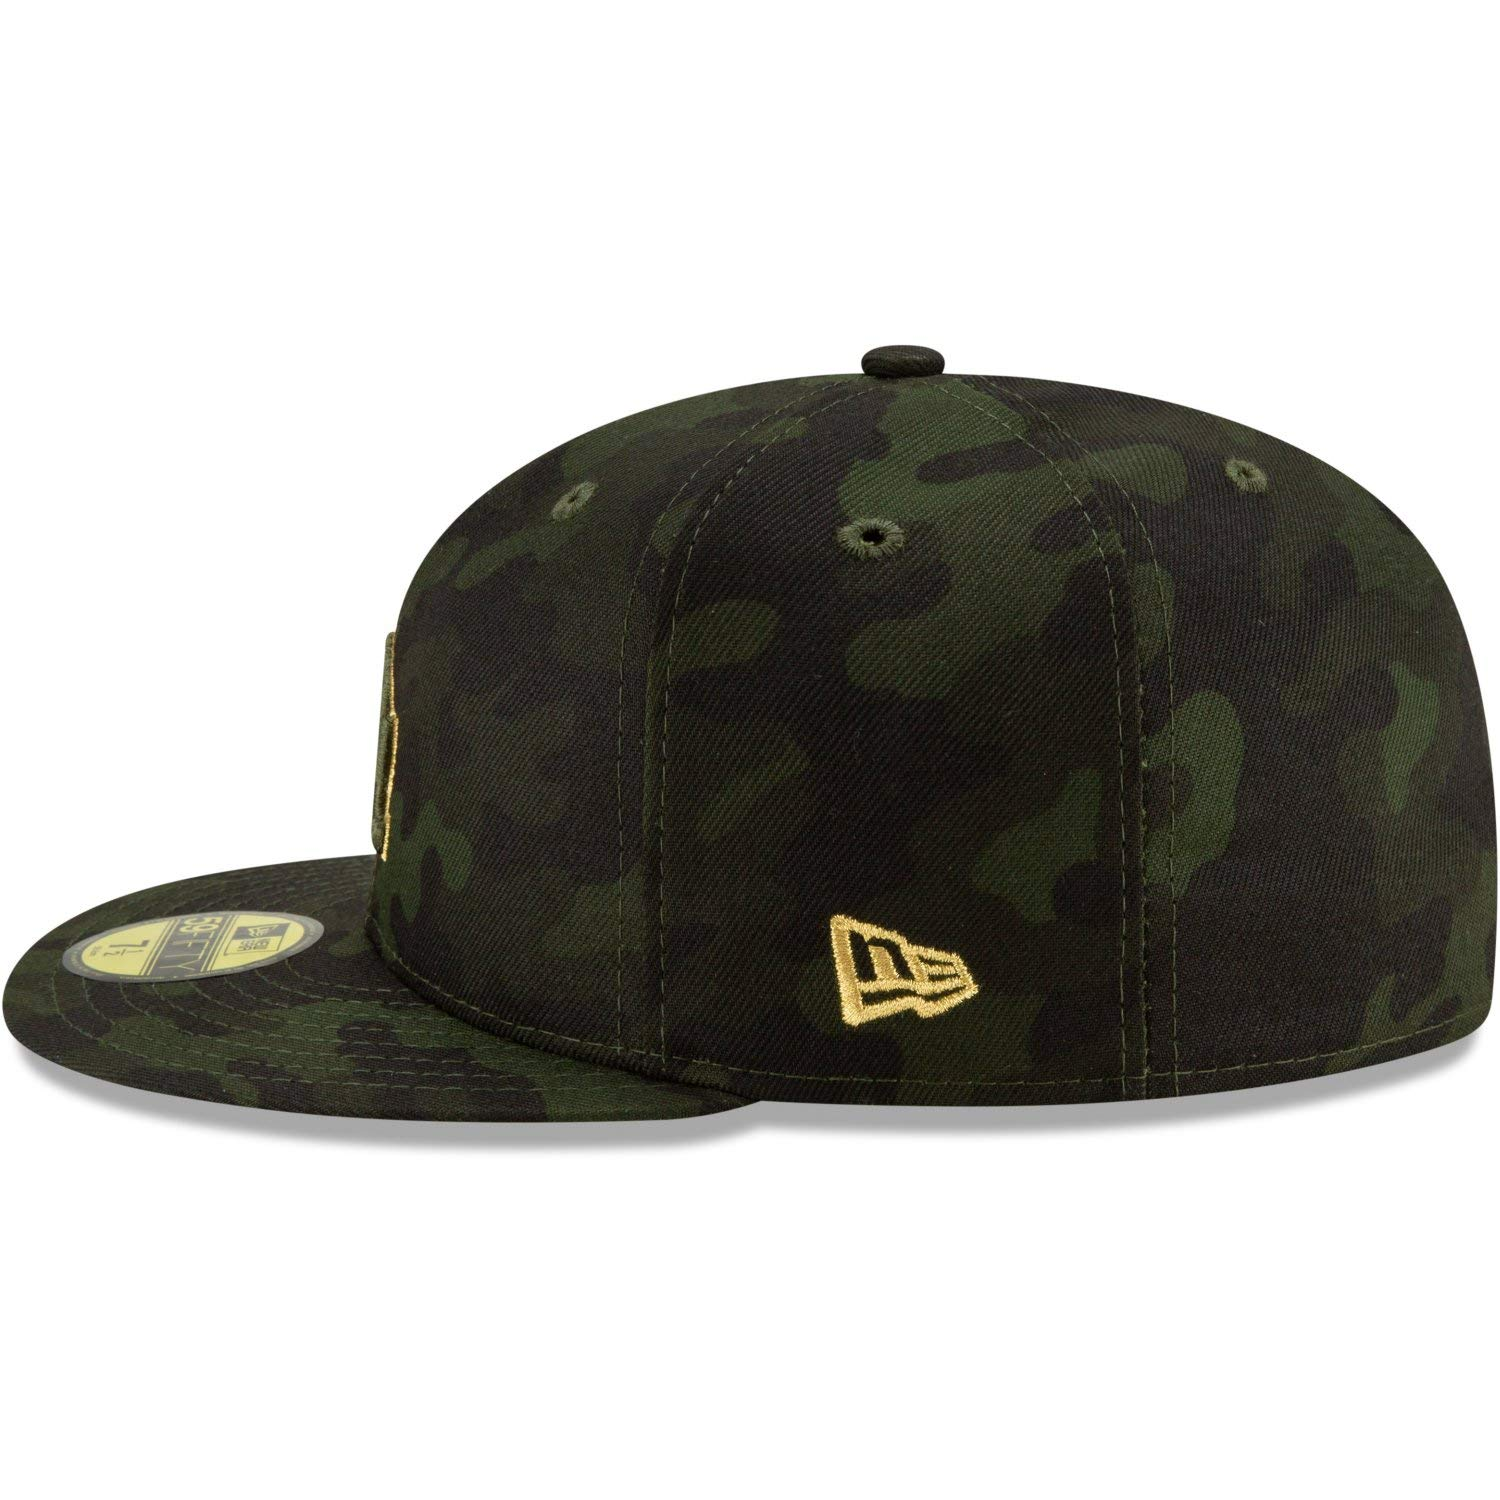 bbe8b632 New Era Los Angeles Dodgers 2019 MLB Armed Forces Day On-Field 59FIFTY  Fitted Hat - Camo